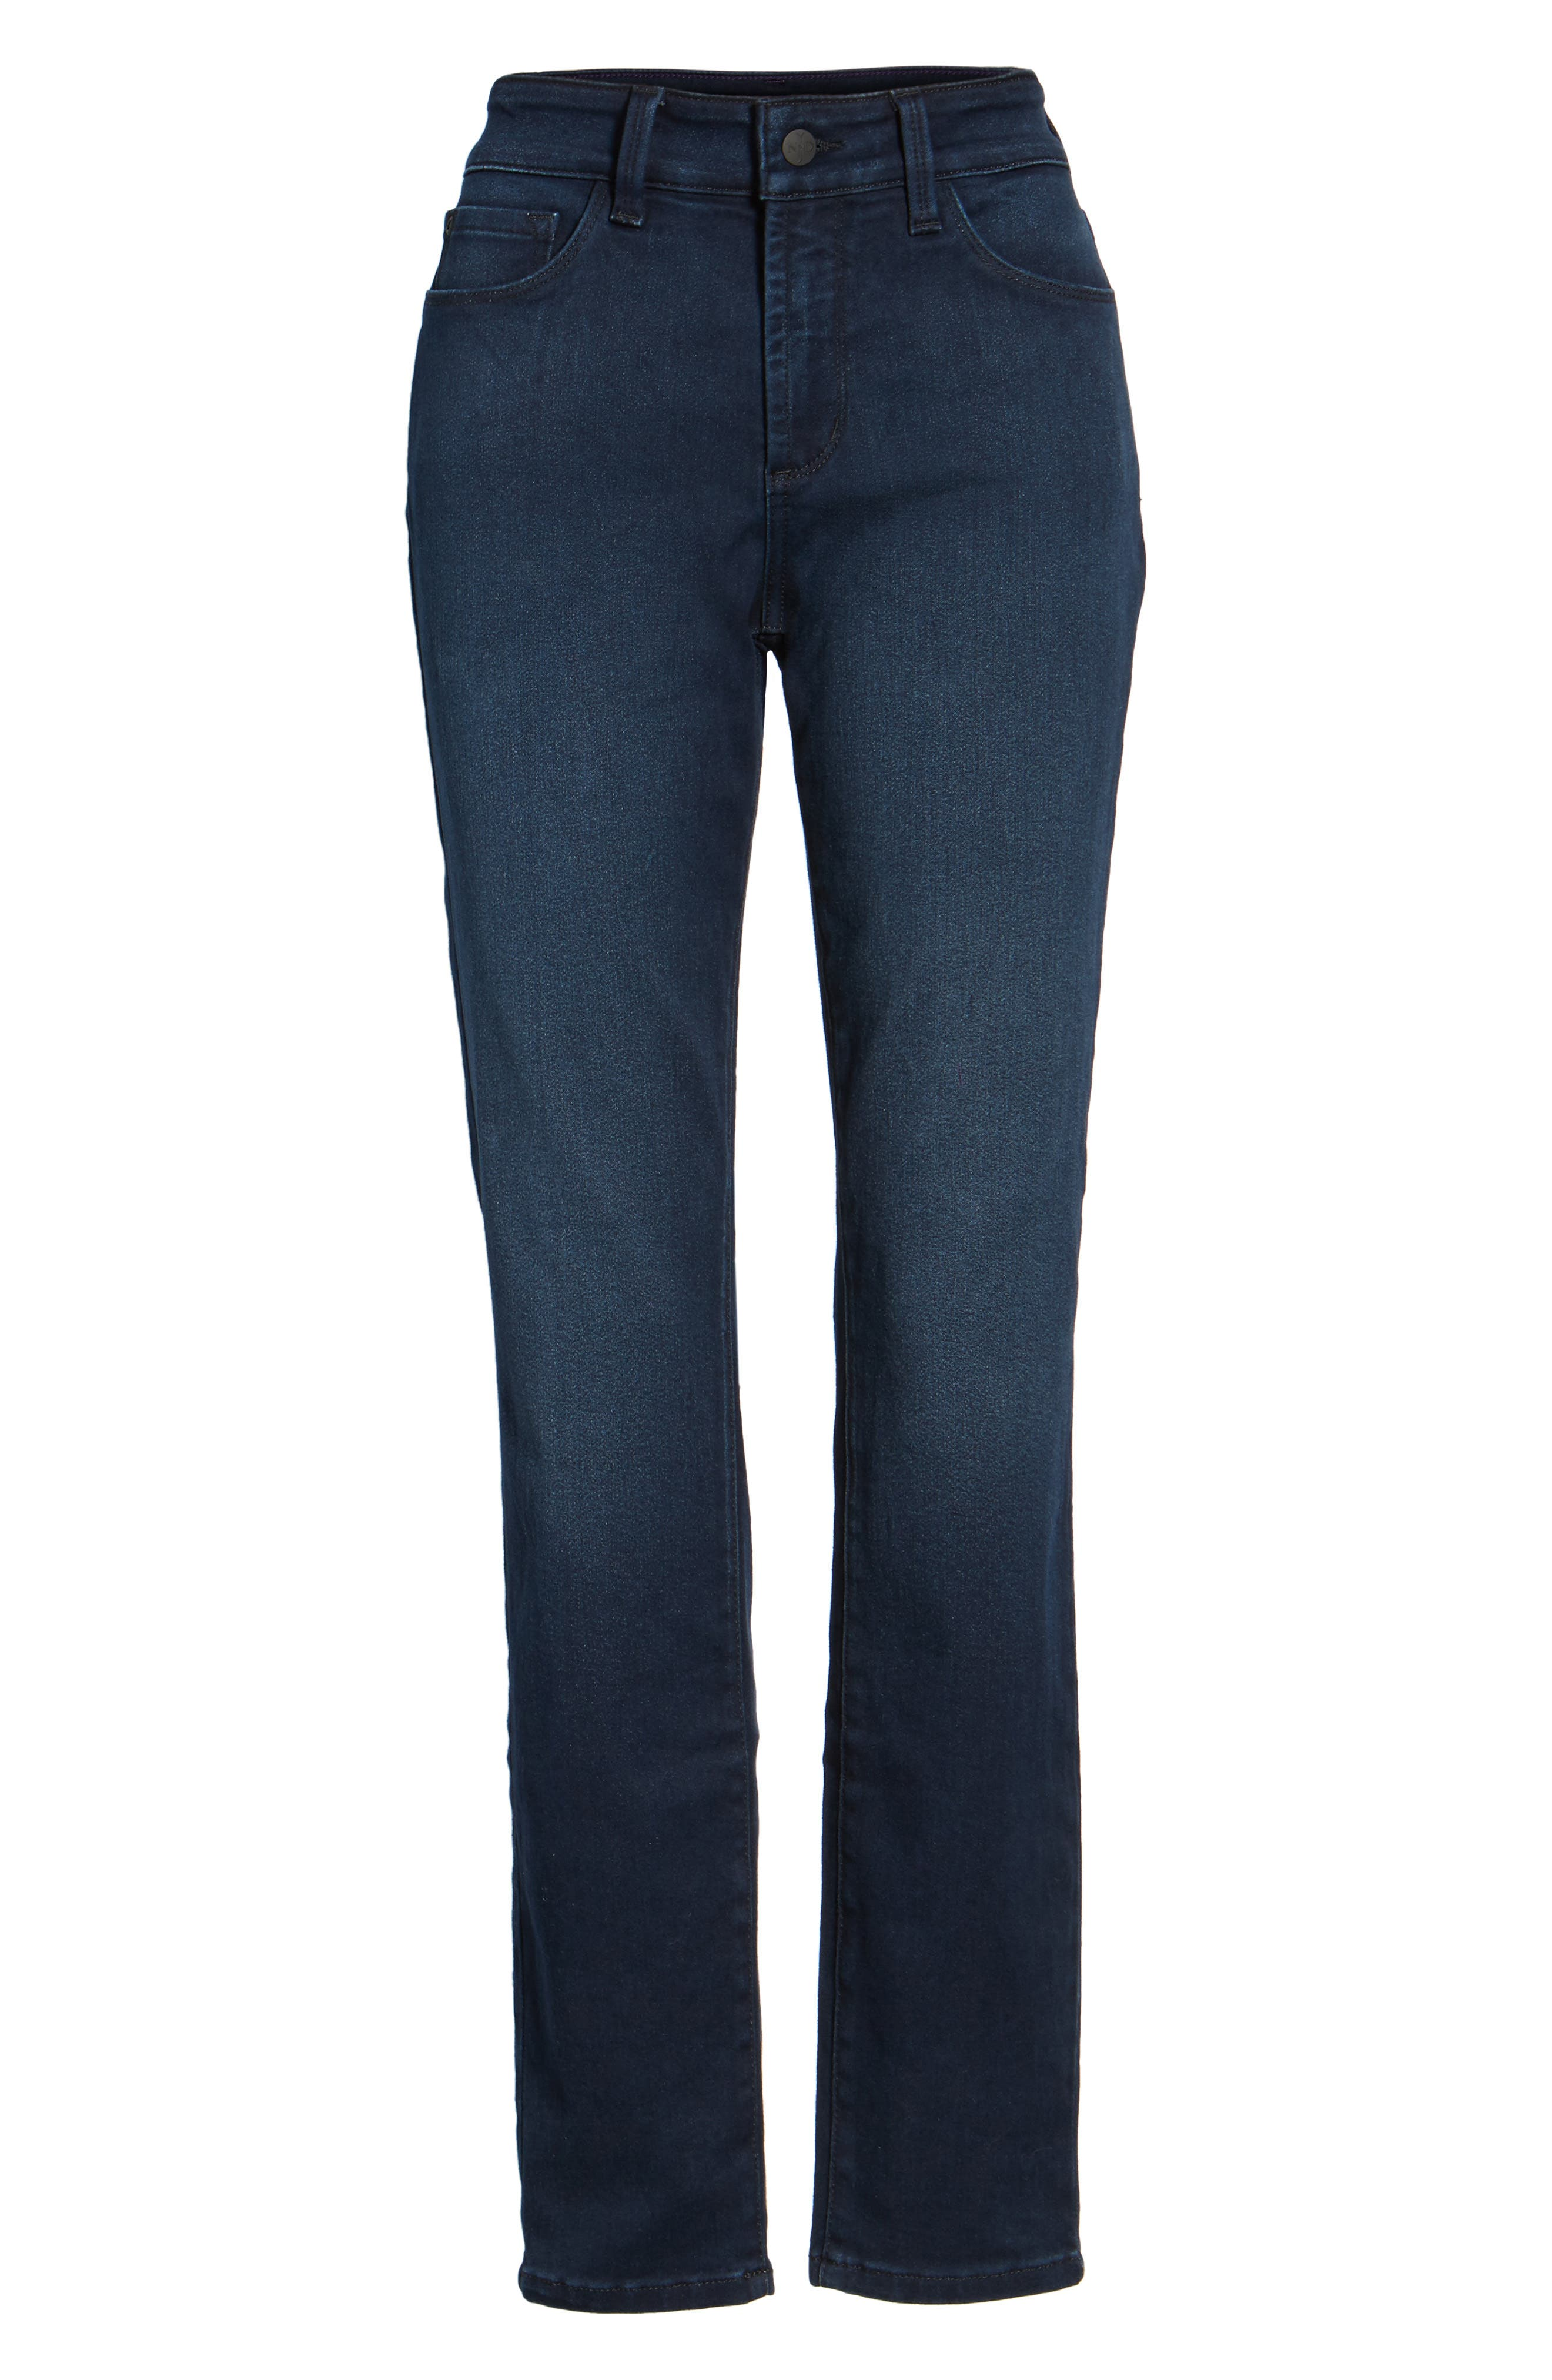 Alina Colored Stretch Skinny Jeans,                         Main,                         color, Norwell